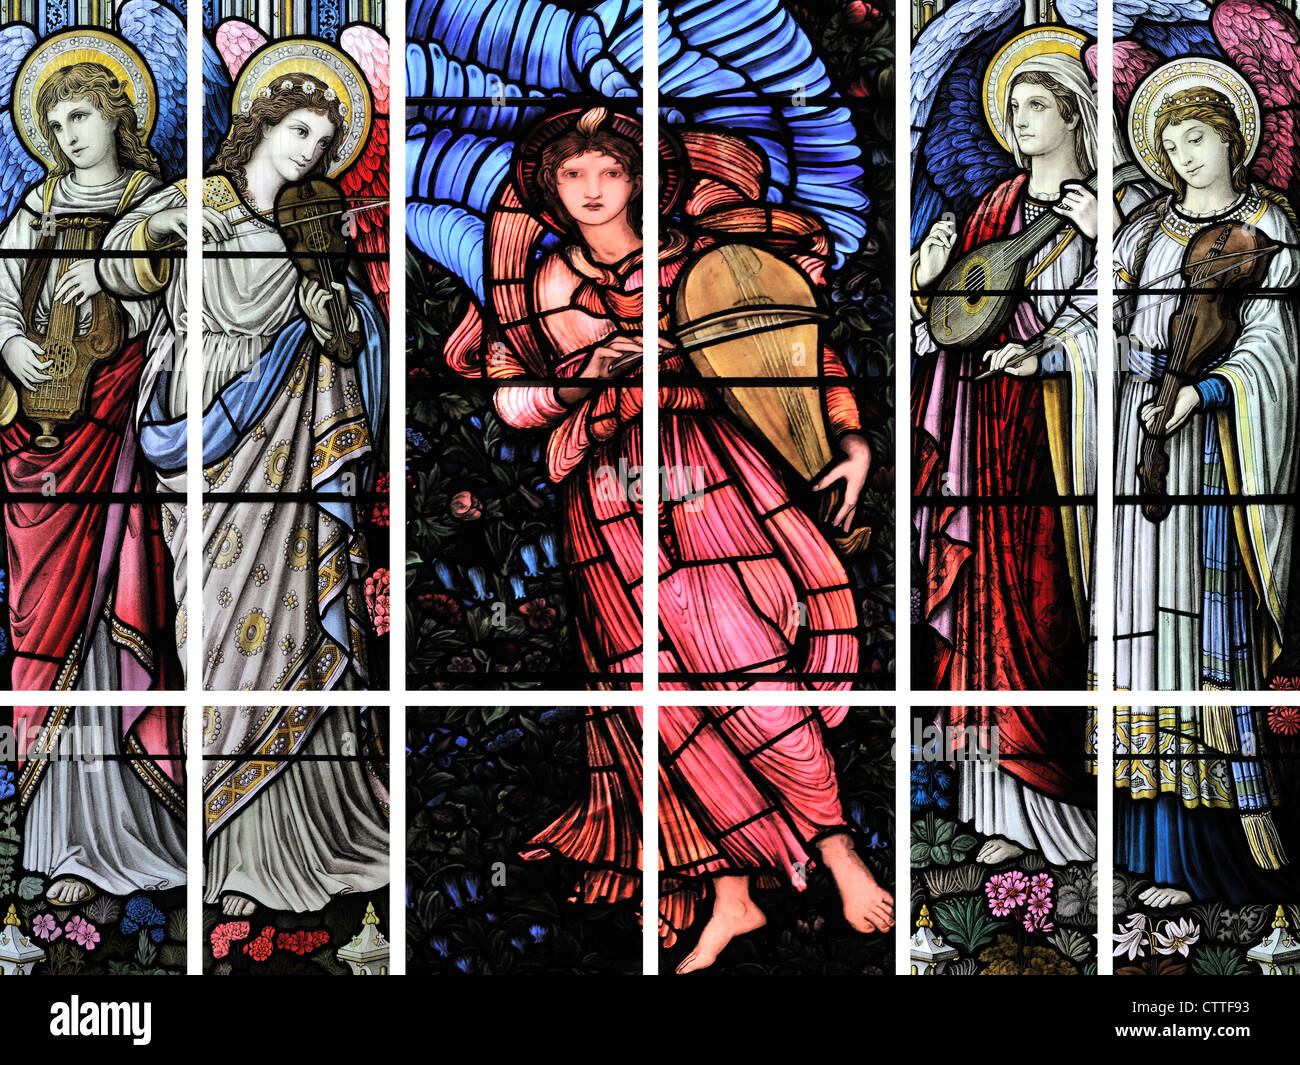 A polyptych depicting five winged-angels playing stringed instruments - Stock Image